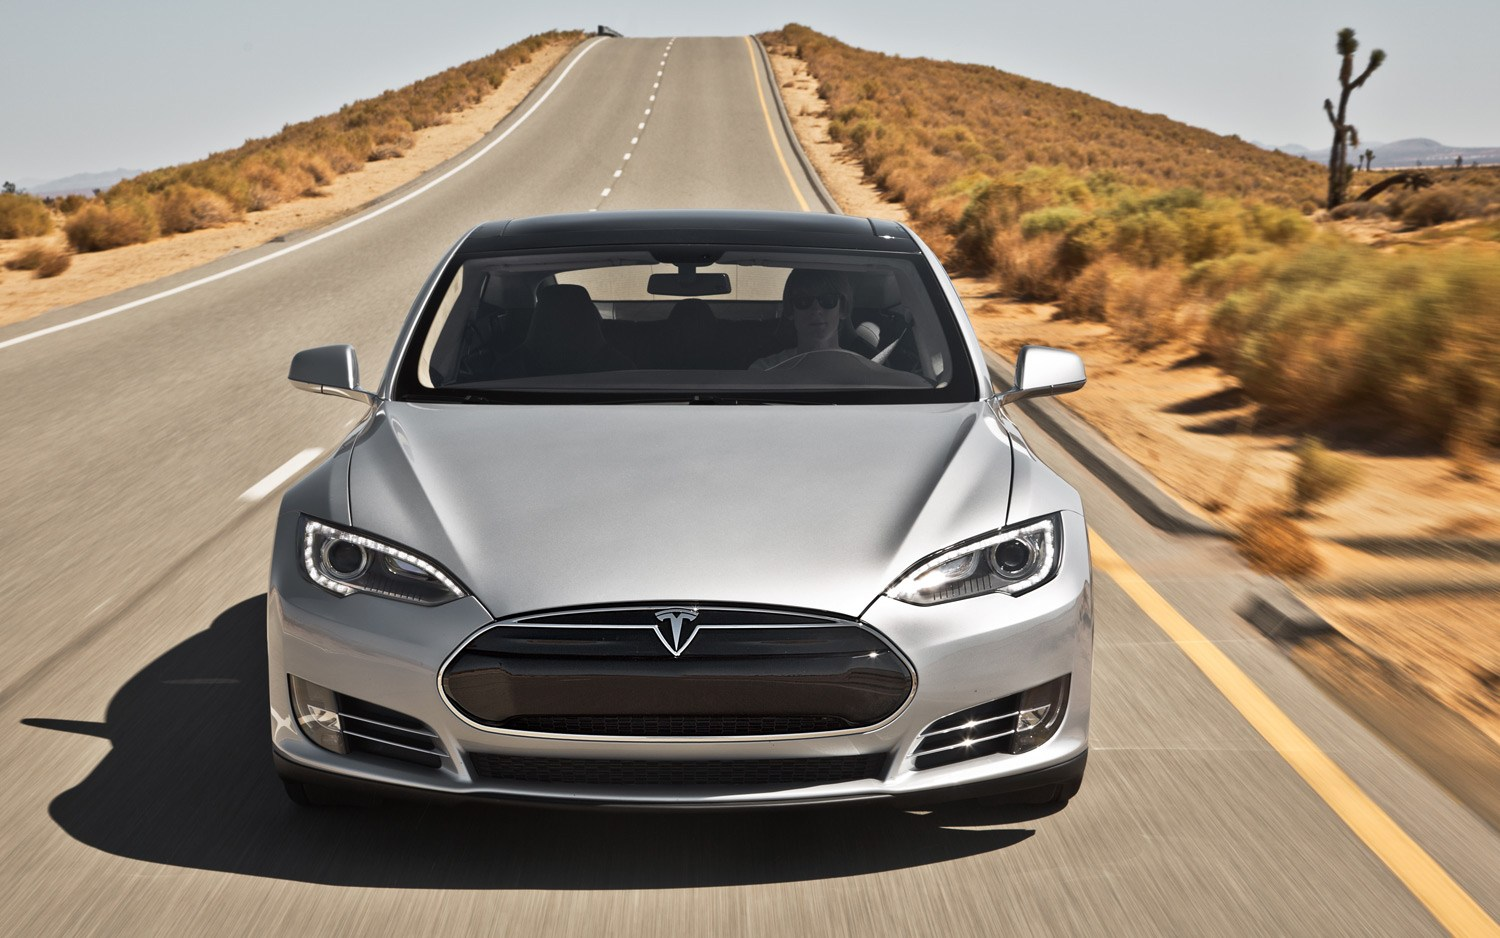 April Registrations of Tesla Drop In California Market